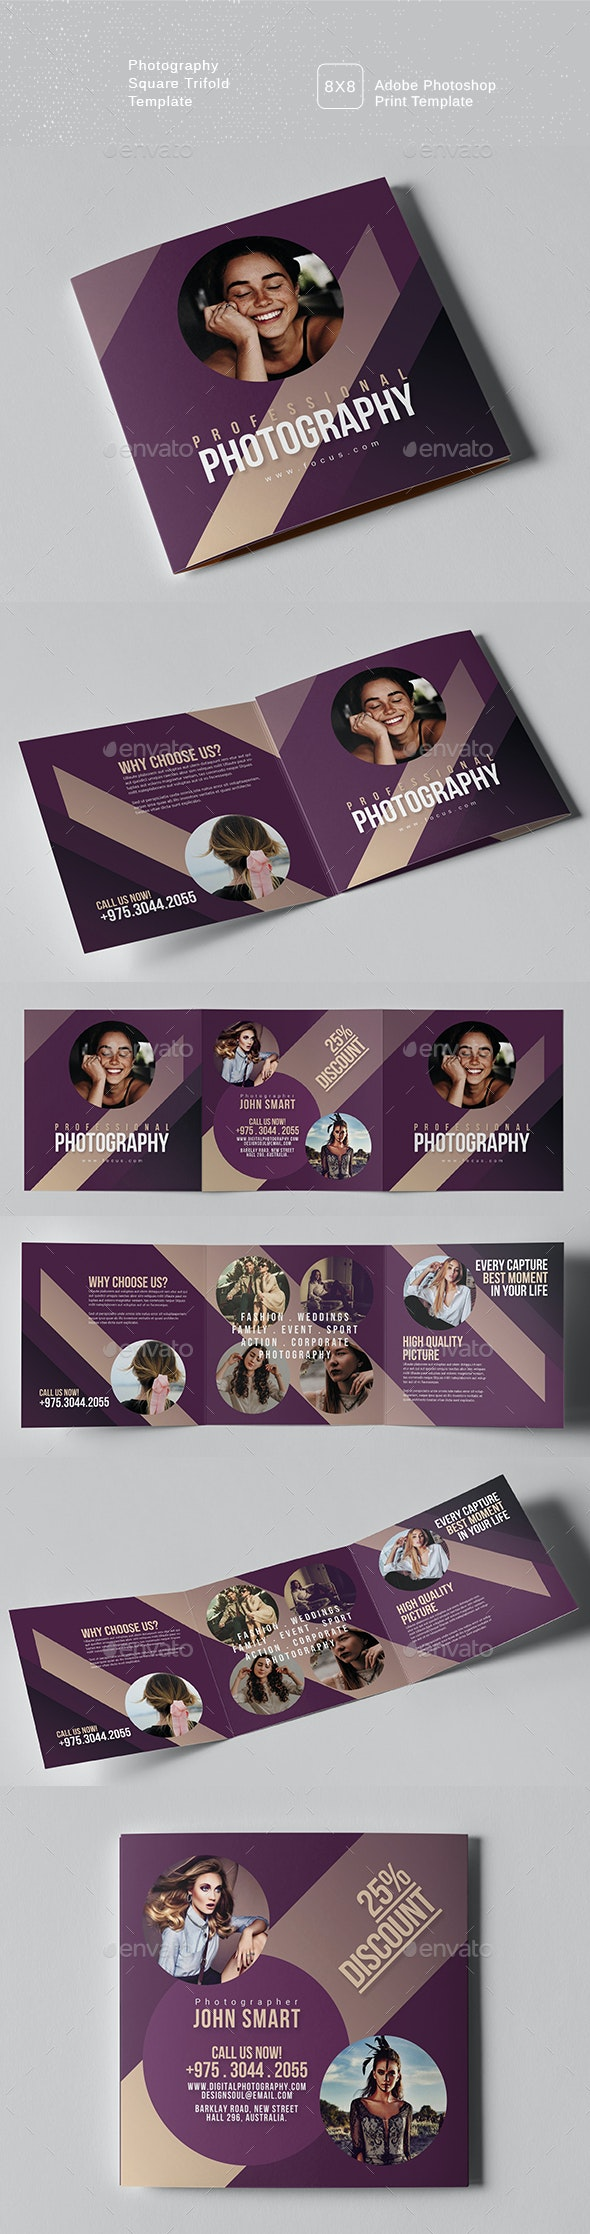 Photography Square Trifold Brochure - Brochures Print Templates